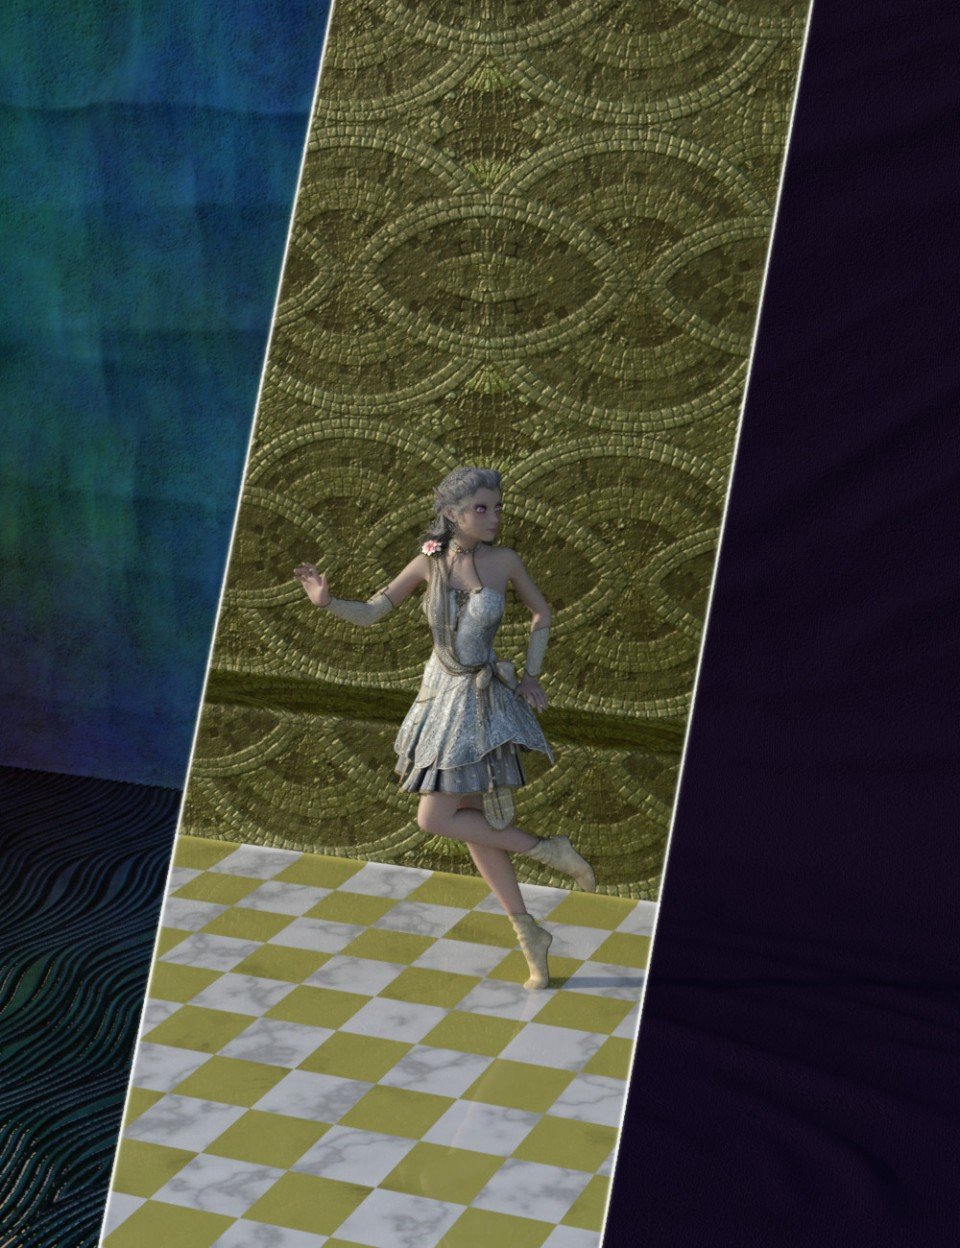 FSL Morphing Backdrop and Shaders for Iray_DAZ3D下载站